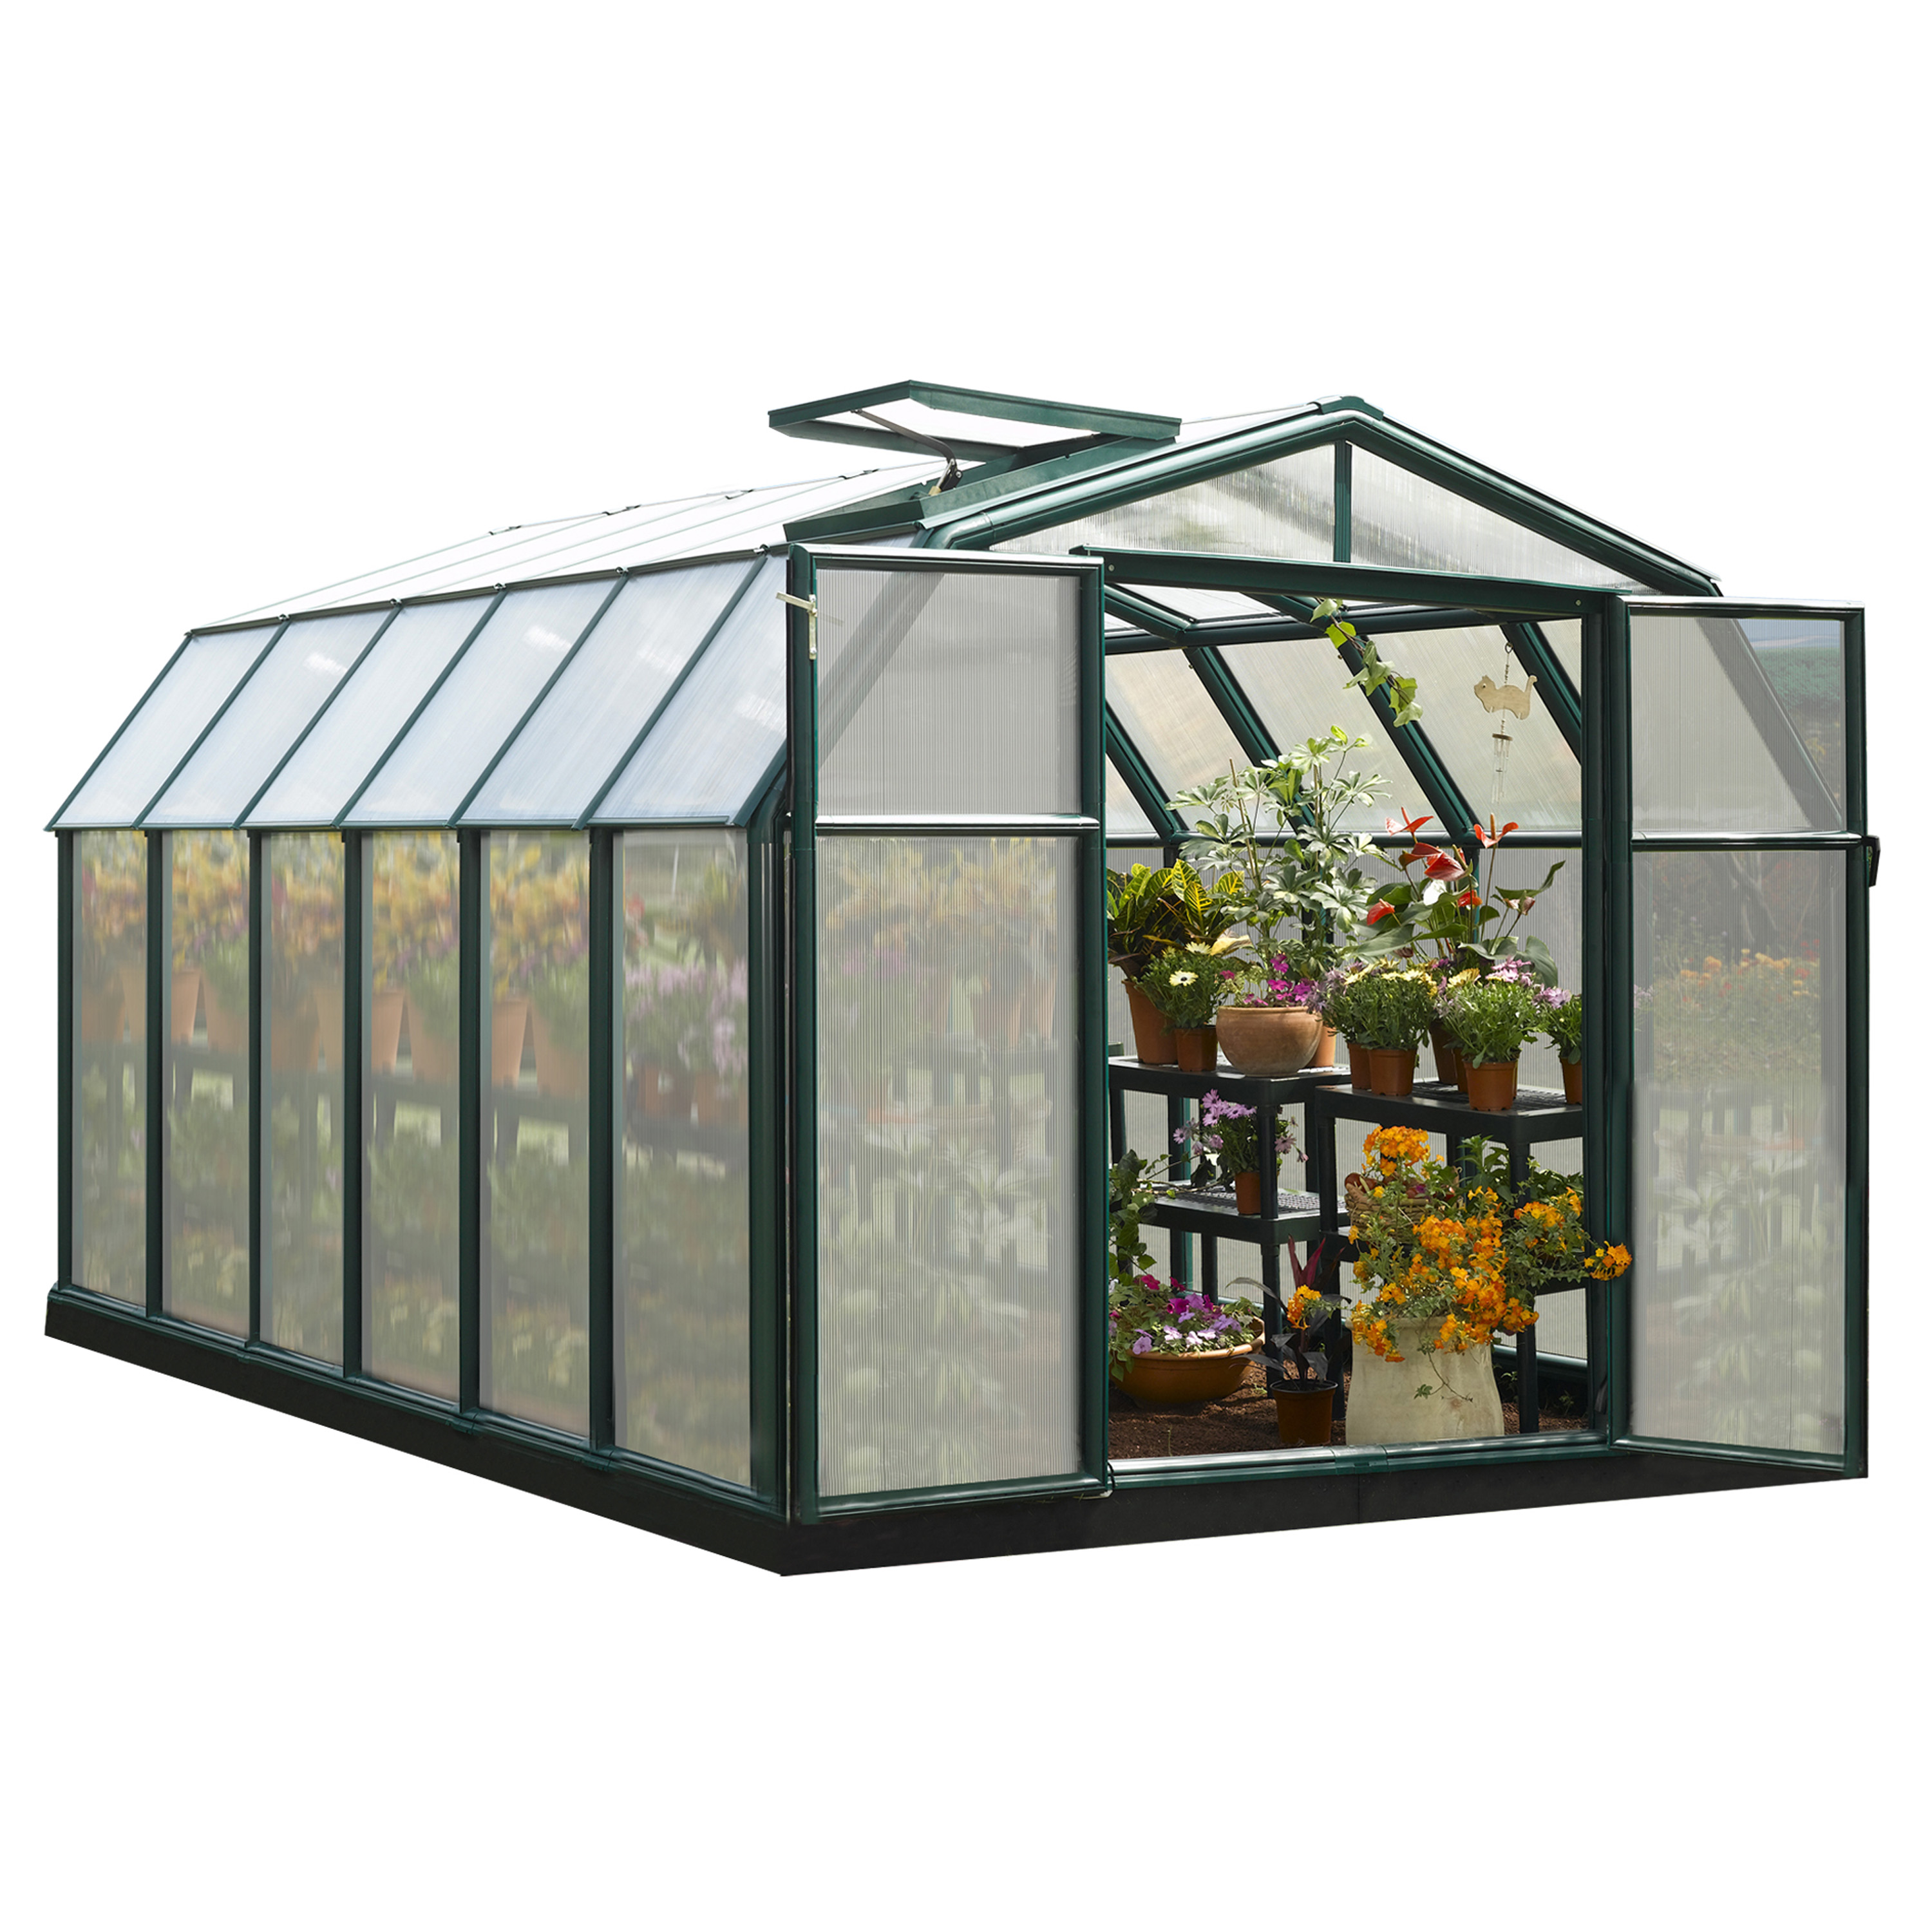 Rion Hobby Gardener 2 Twin-Wall Greenhouse, 8' x 12'